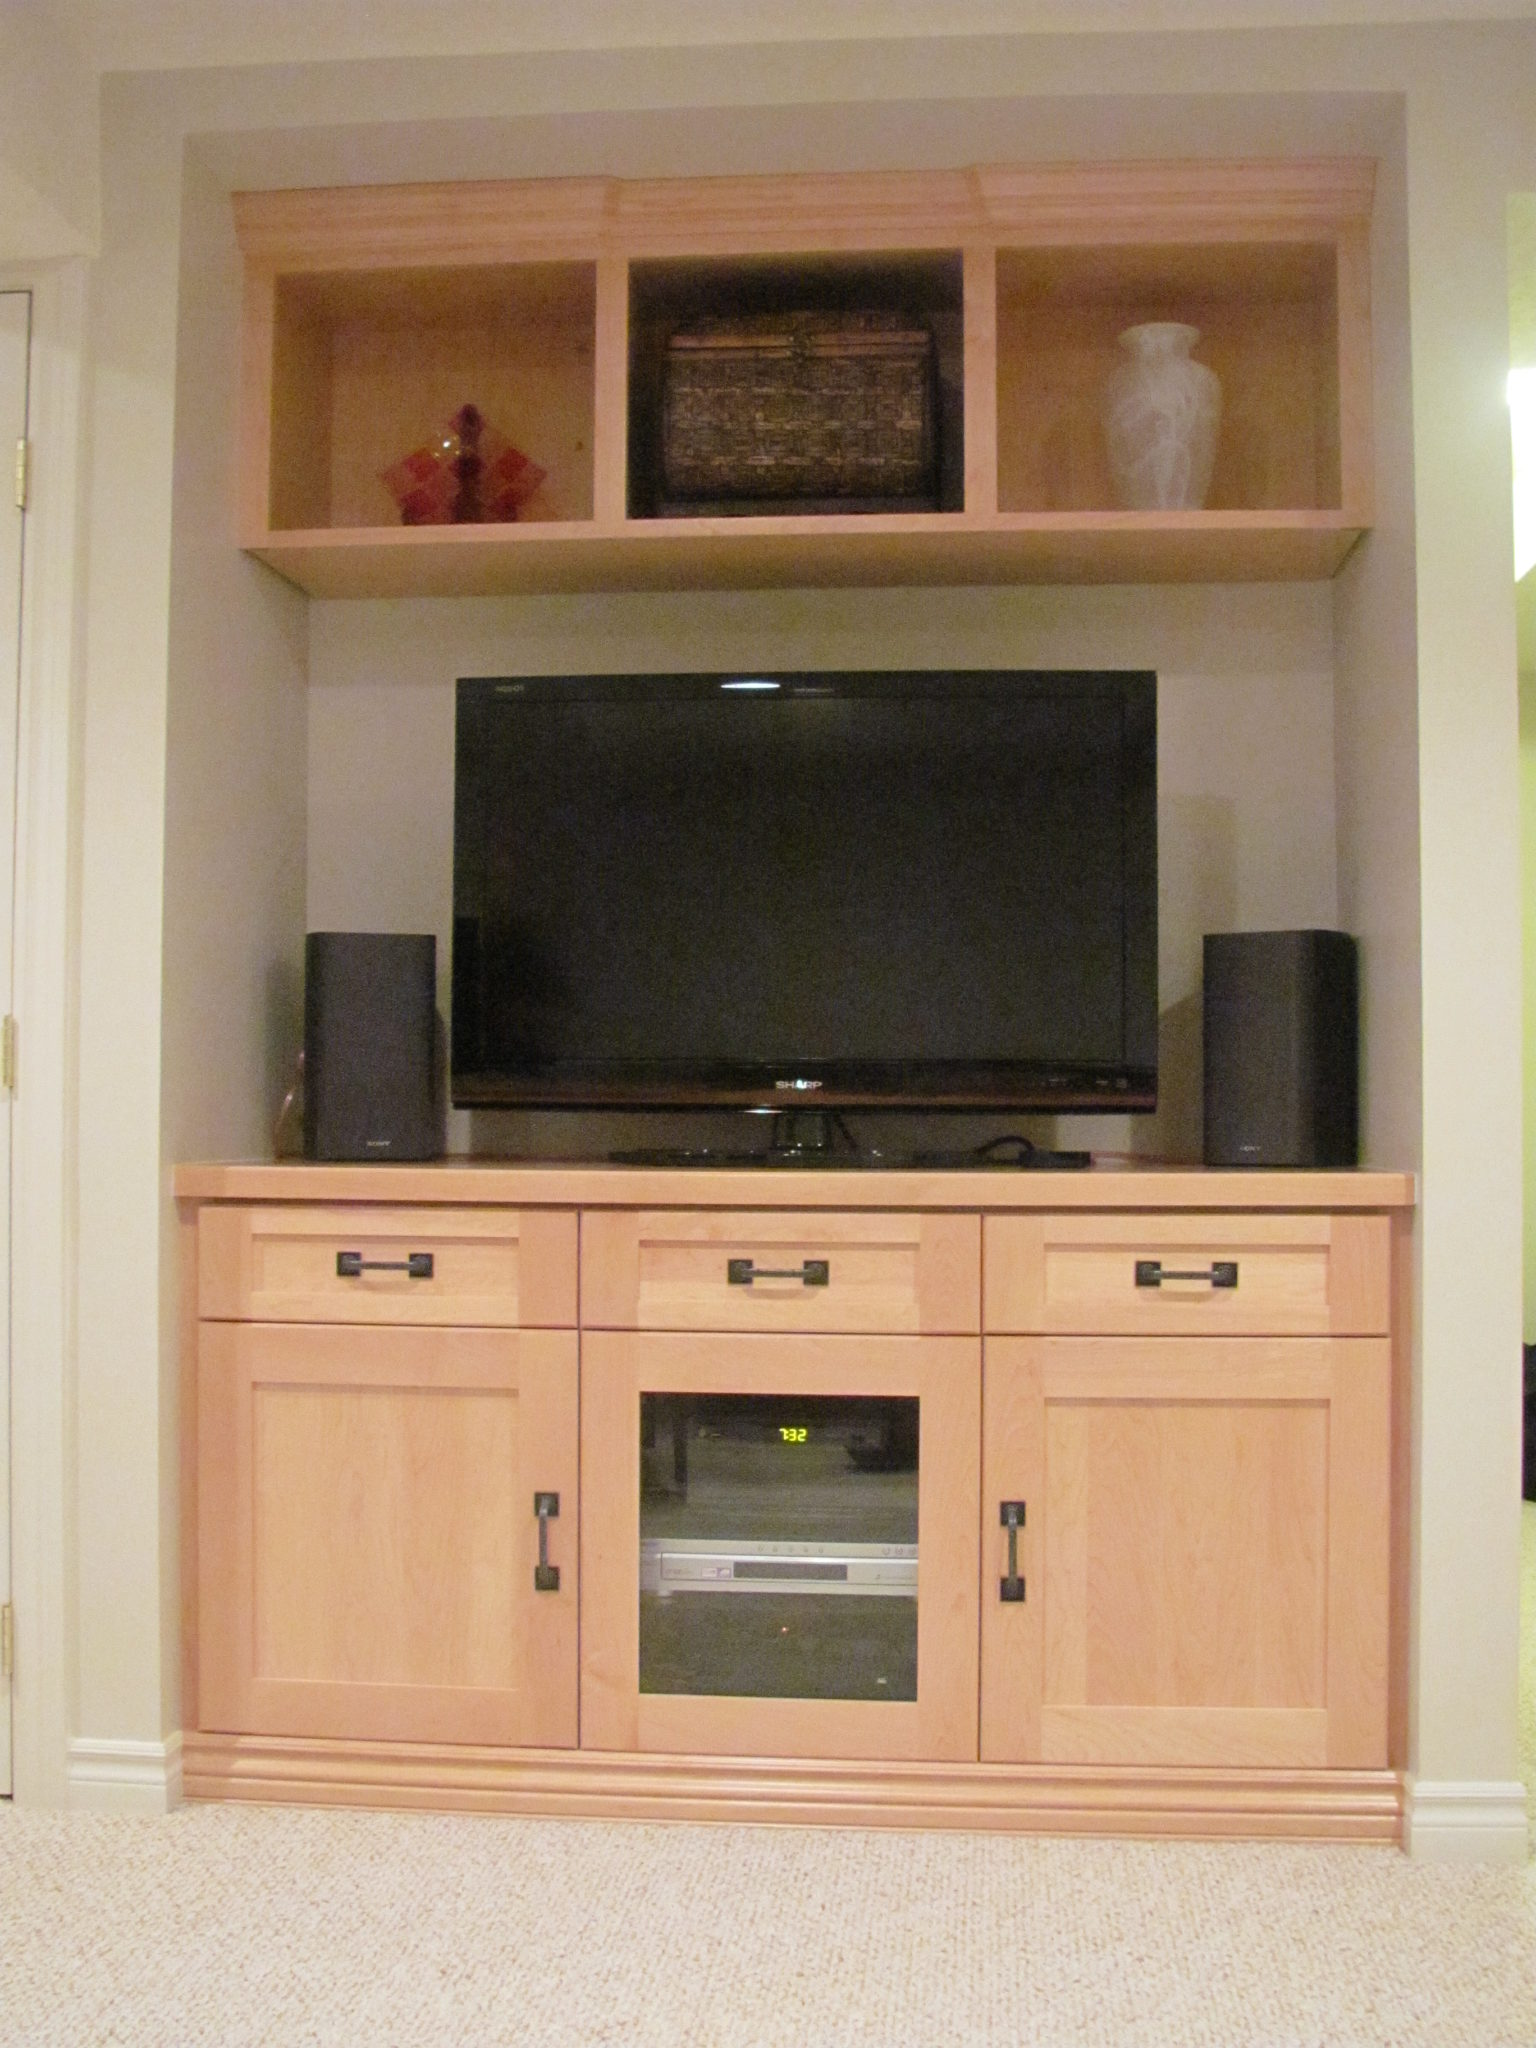 Guelph Woodworking Tv Wall Unit